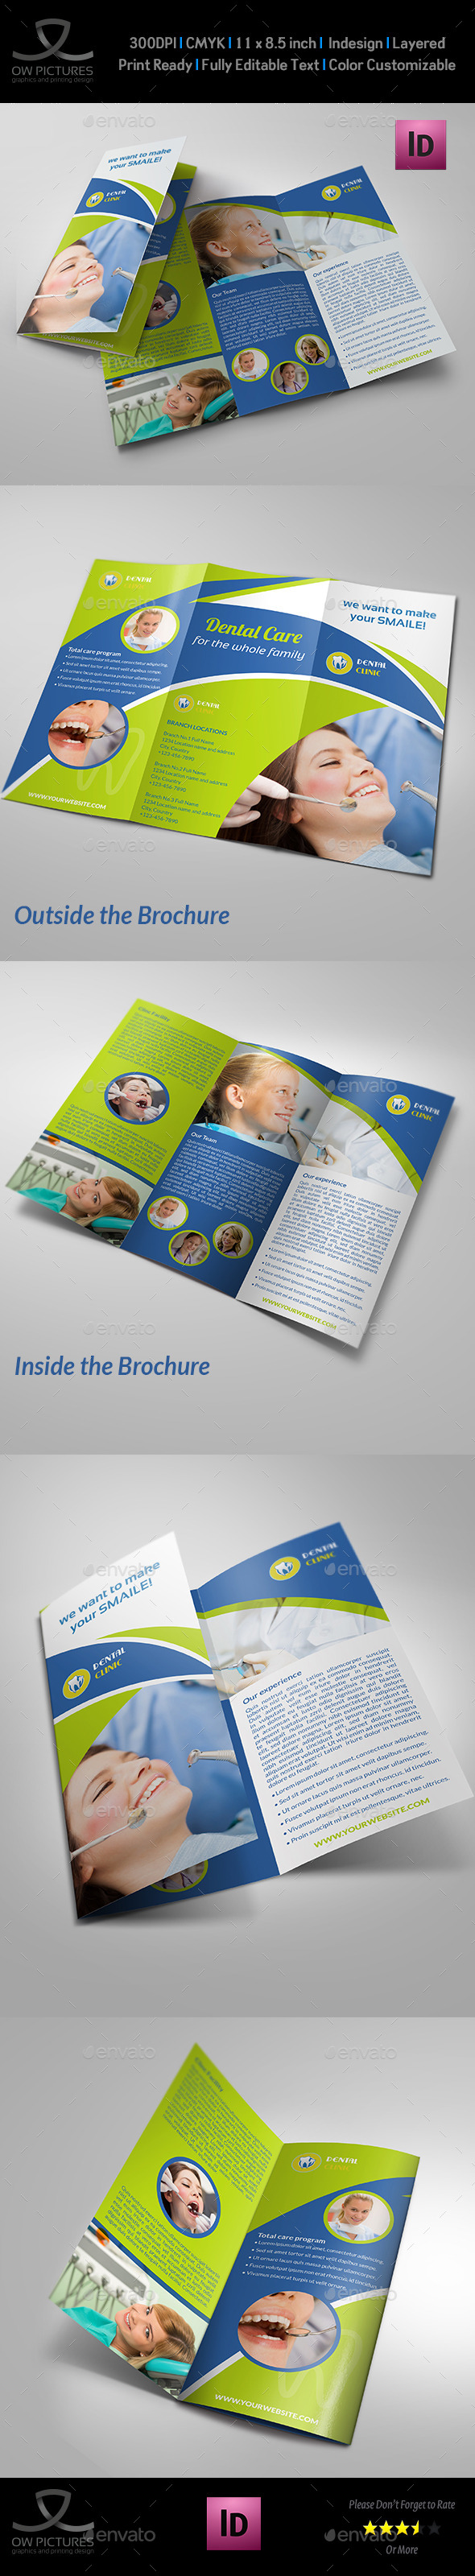 Dental Clinic Tri-Fold Brochure Vol.2 - Informational Brochures